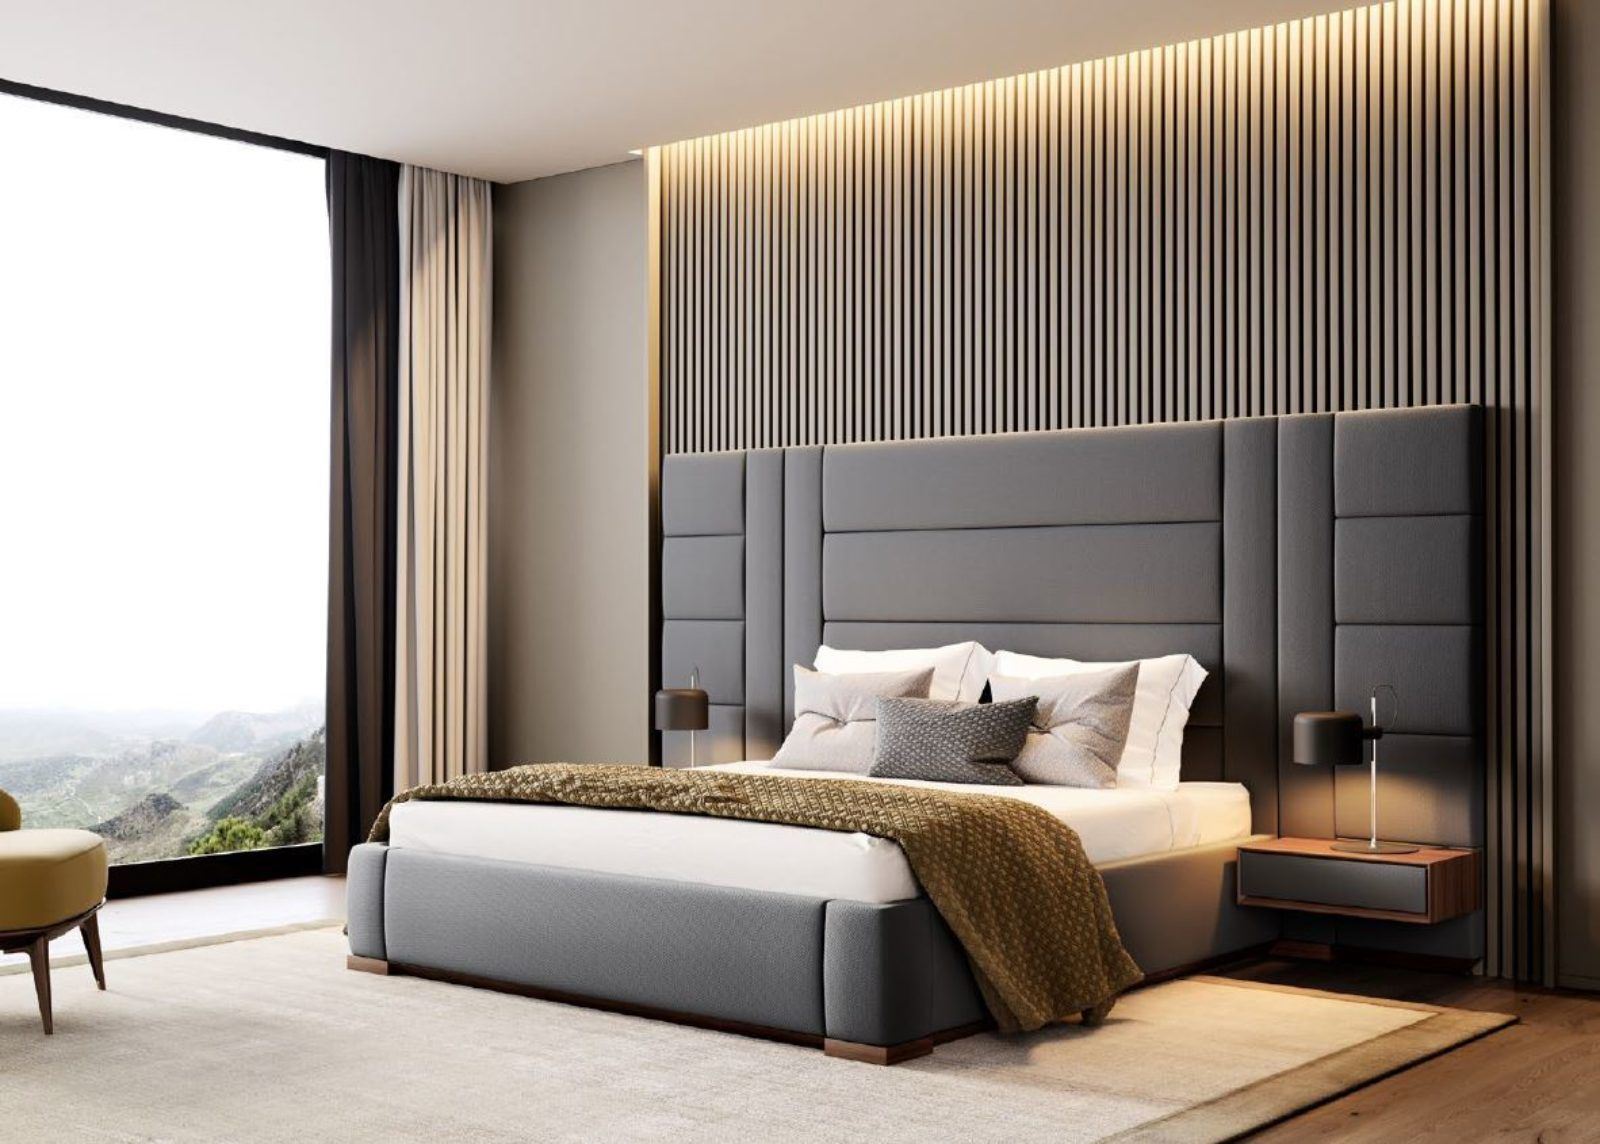 Alvor Bedroom Zoli Contemporary Living Room Design Bedroom